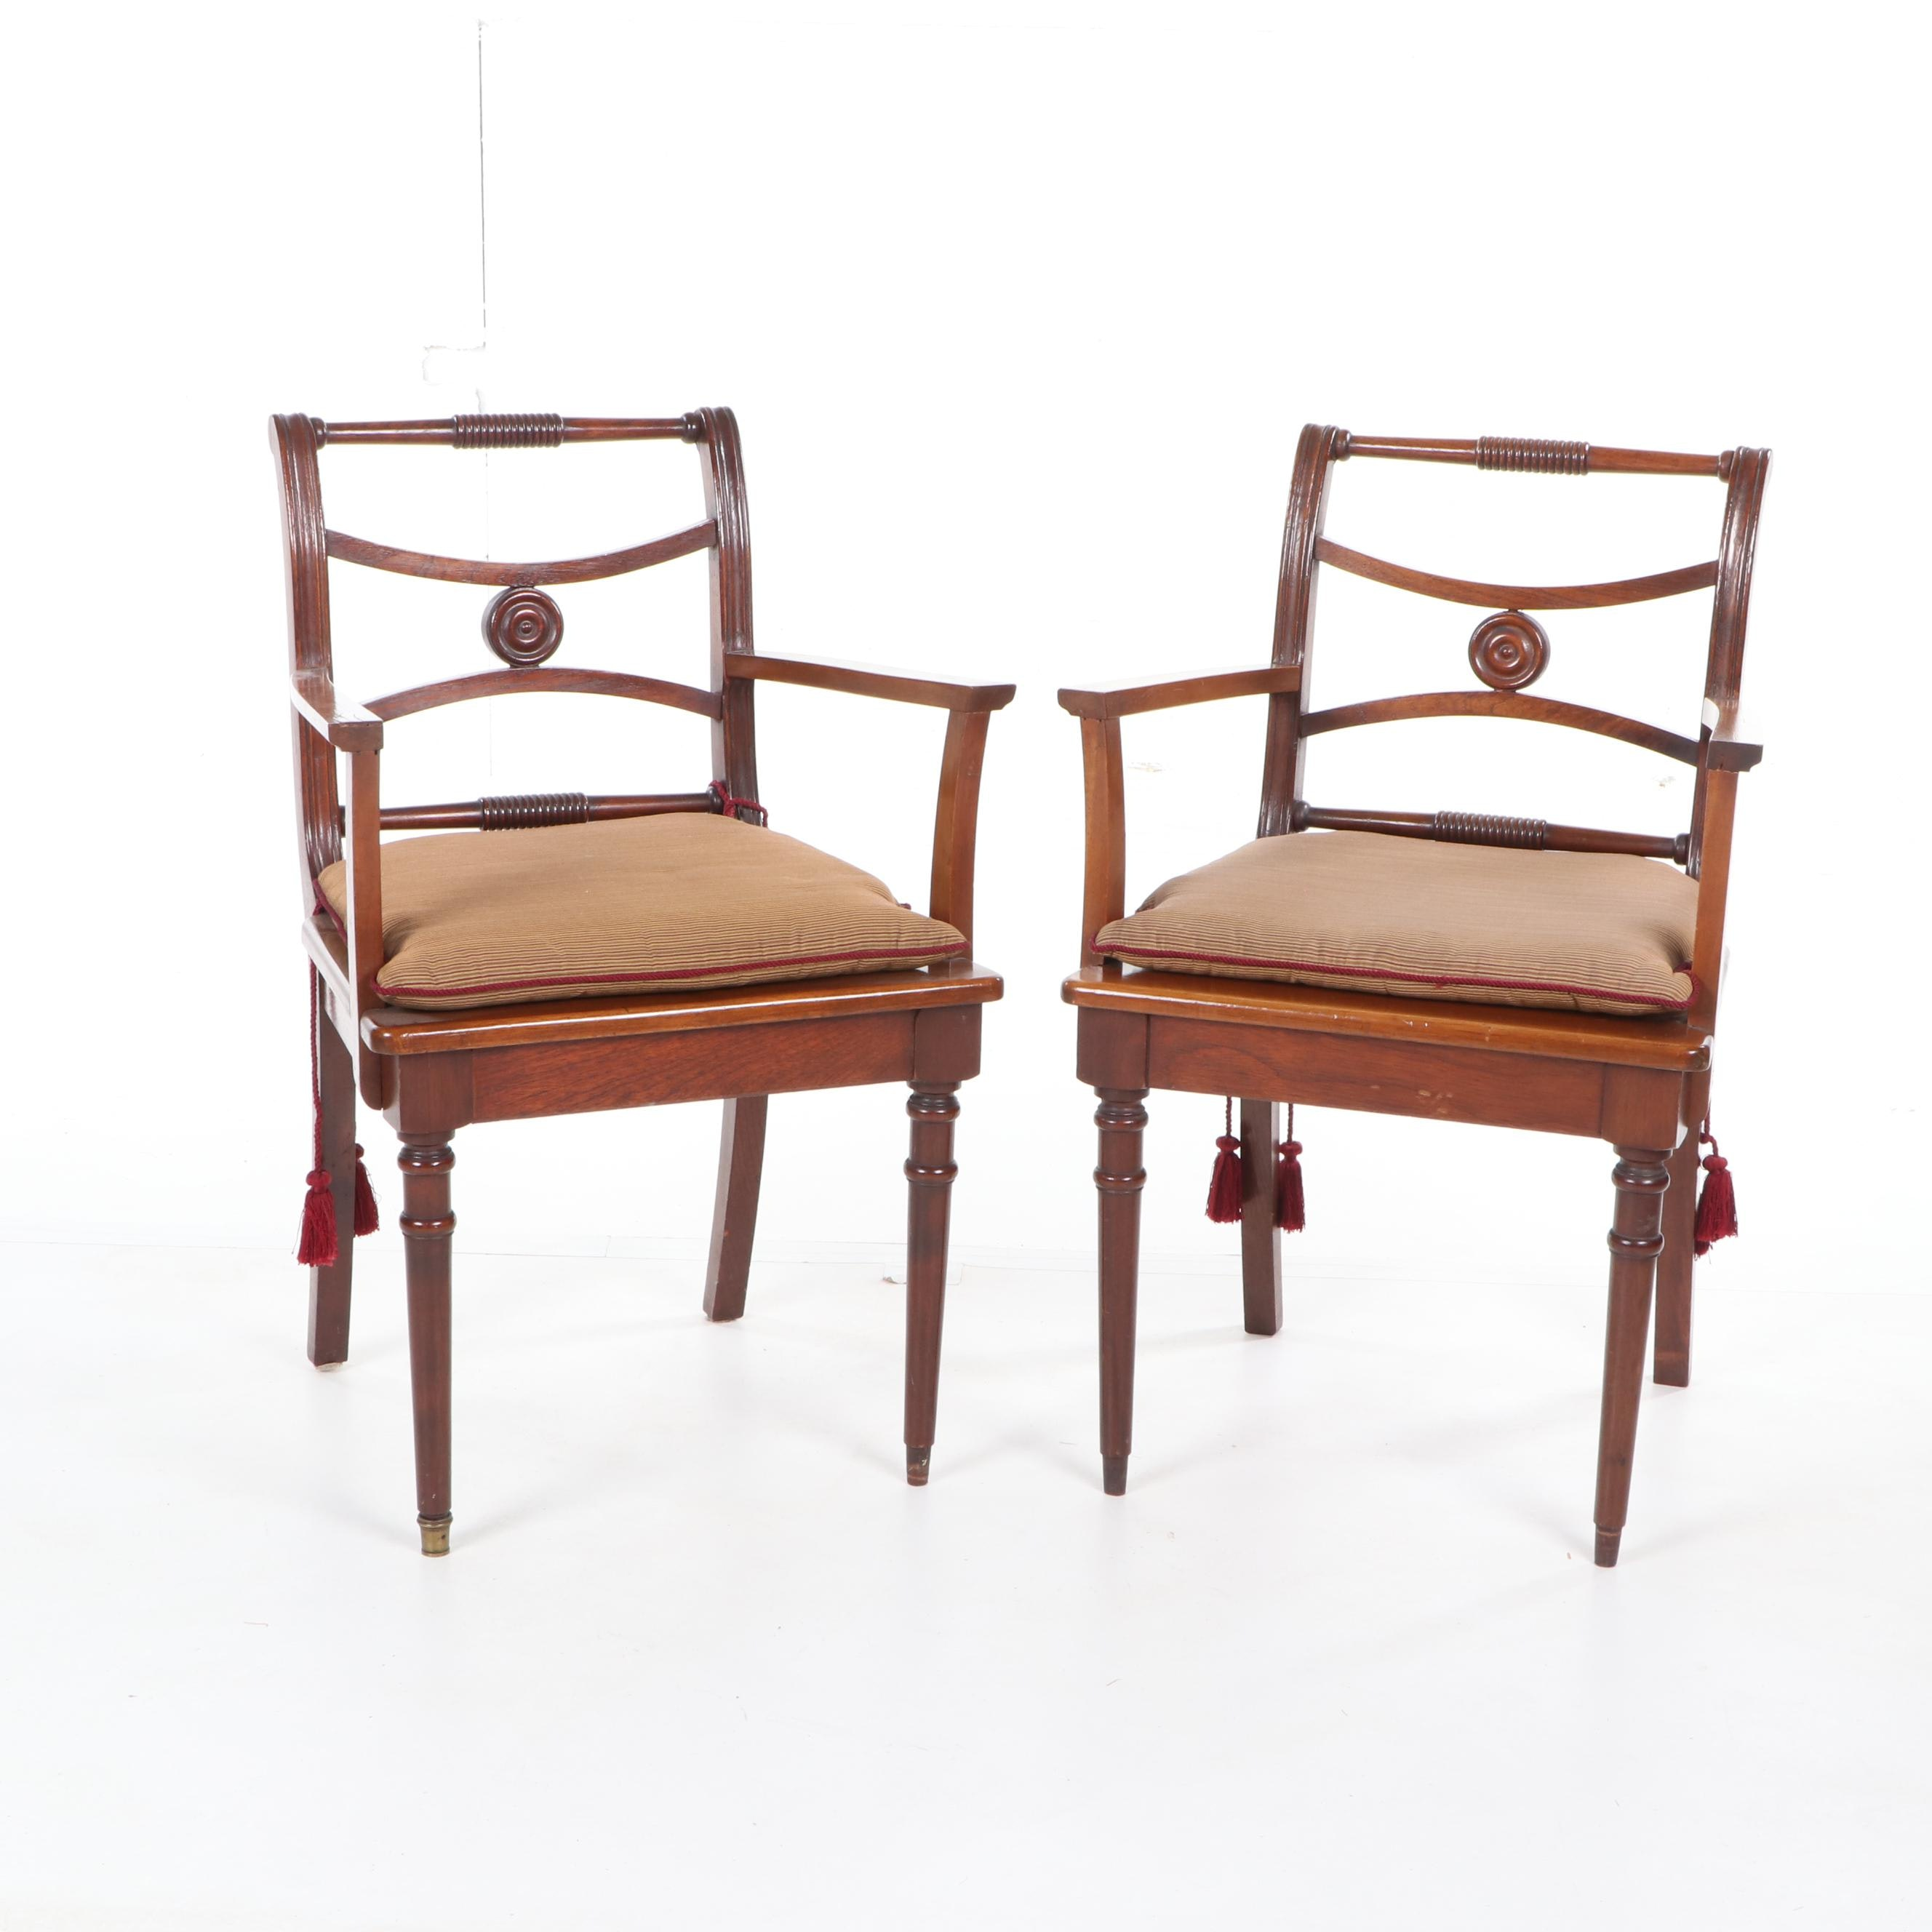 Regency Style Cherrywood Armchairs with Seat Cushions, Late 20th Century